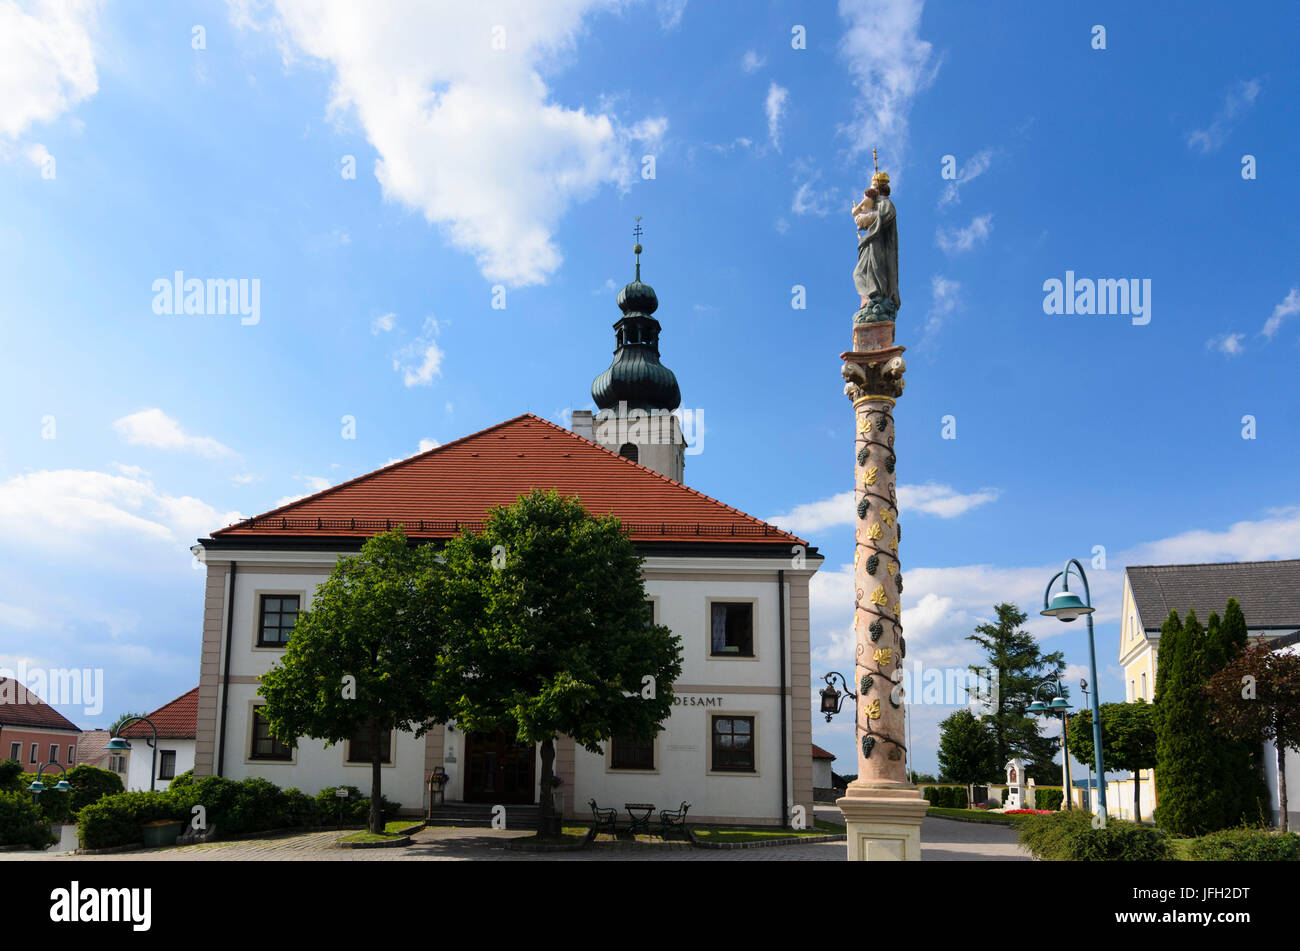 Local authority, parish church St. Peter and Paul and Marian column, Austria, Lower Austria, Viennese alps, Wiesmath - Stock Image